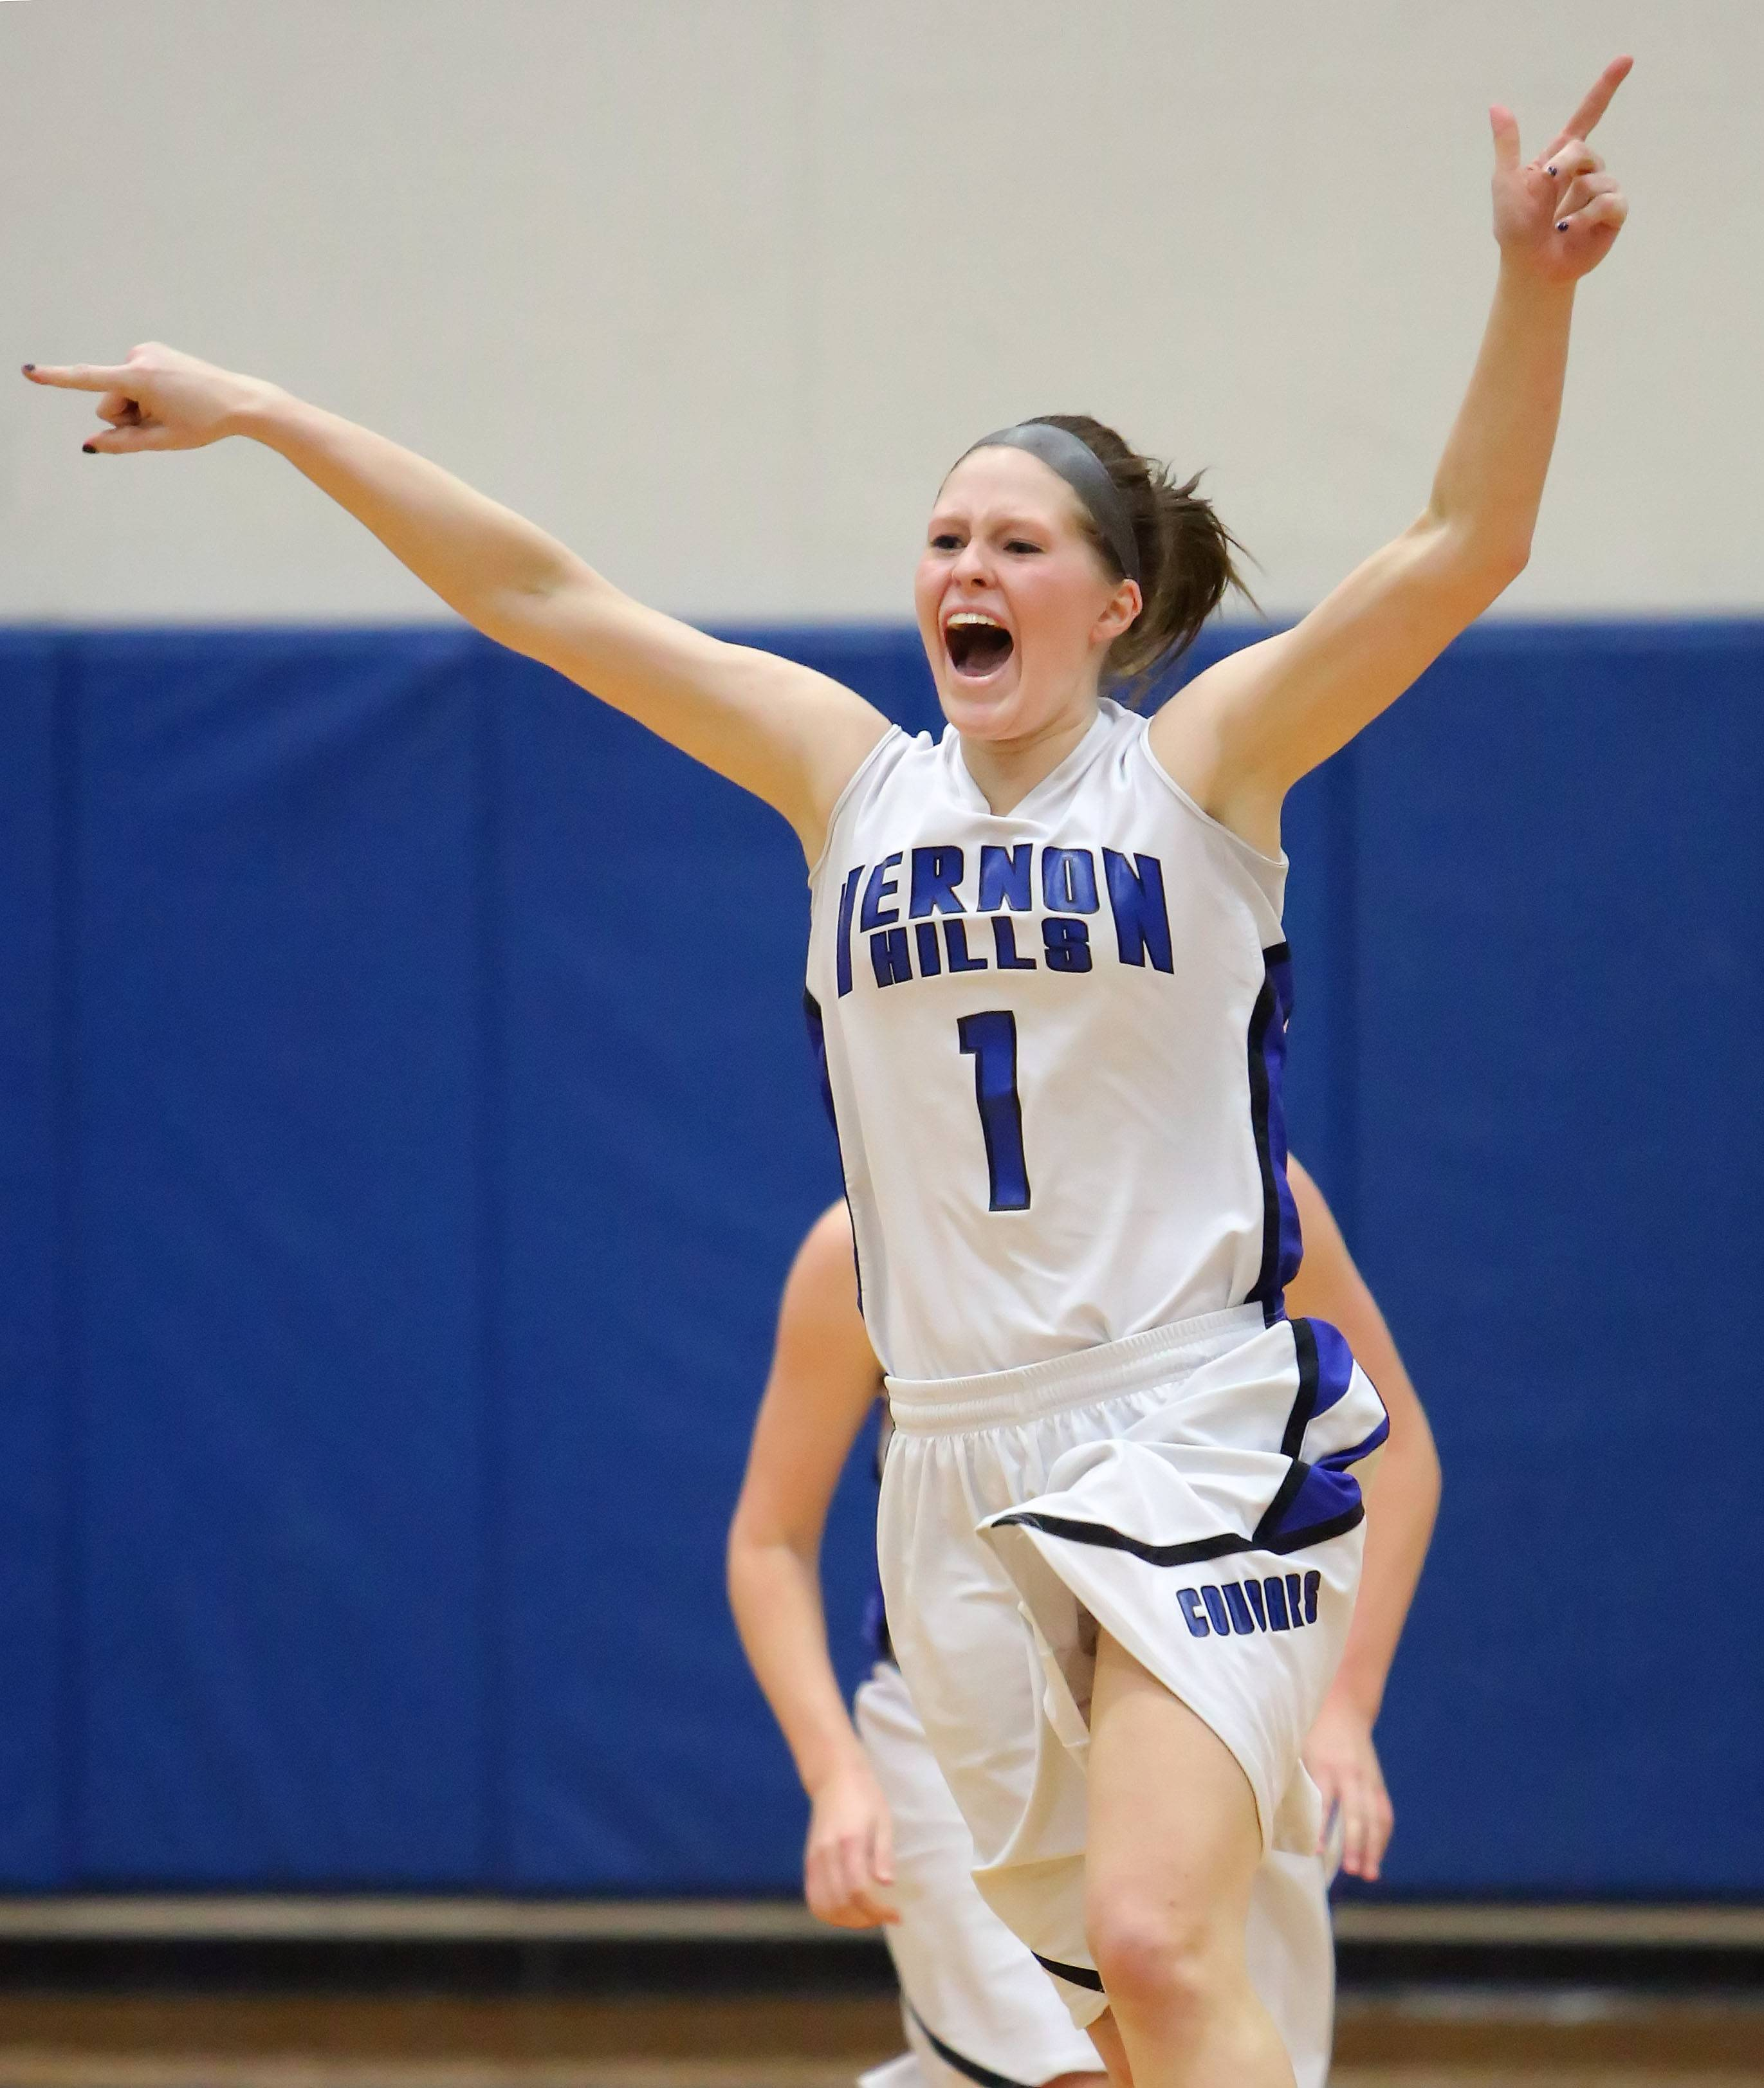 Vernon Hills' Sydney Smith celebrates after the Cougars' last-minute win over Zion-Benton in the North Suburban Conference championship game Wednesday night at Vernon Hills.